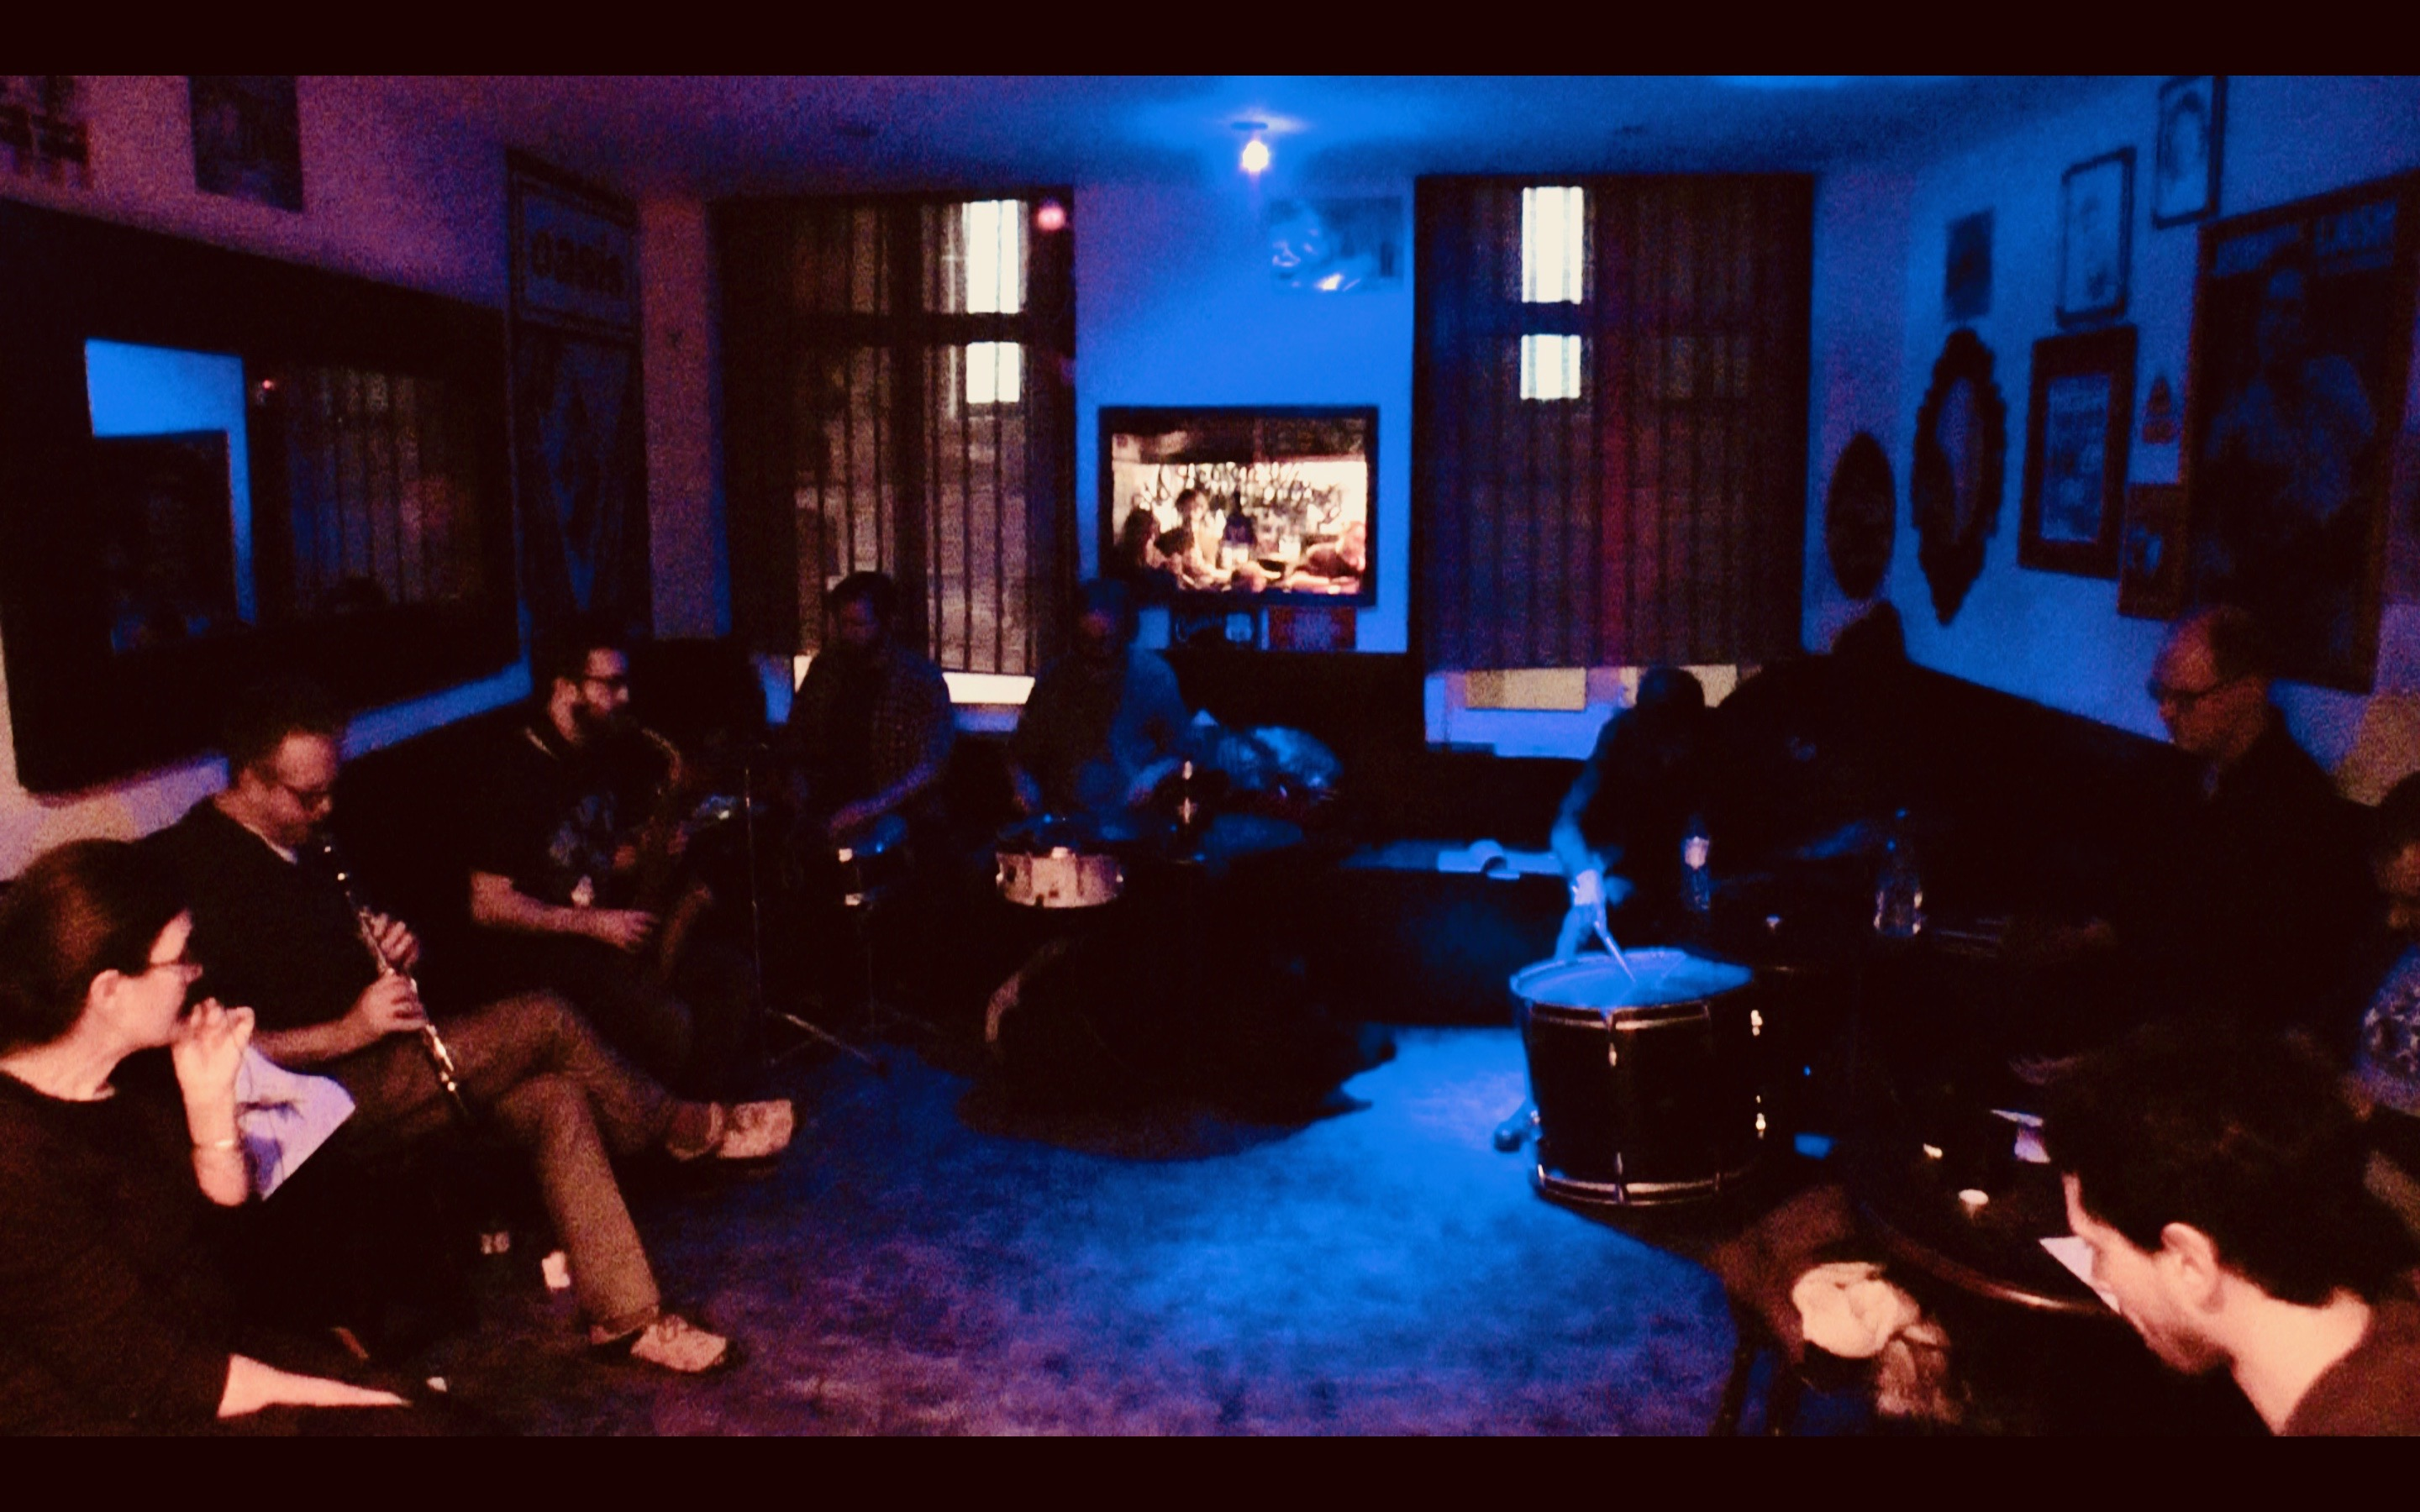 Mopomoso Workshop Group experimenting with emotional state motivators in their dark lit meeting space at Troy Bar, London